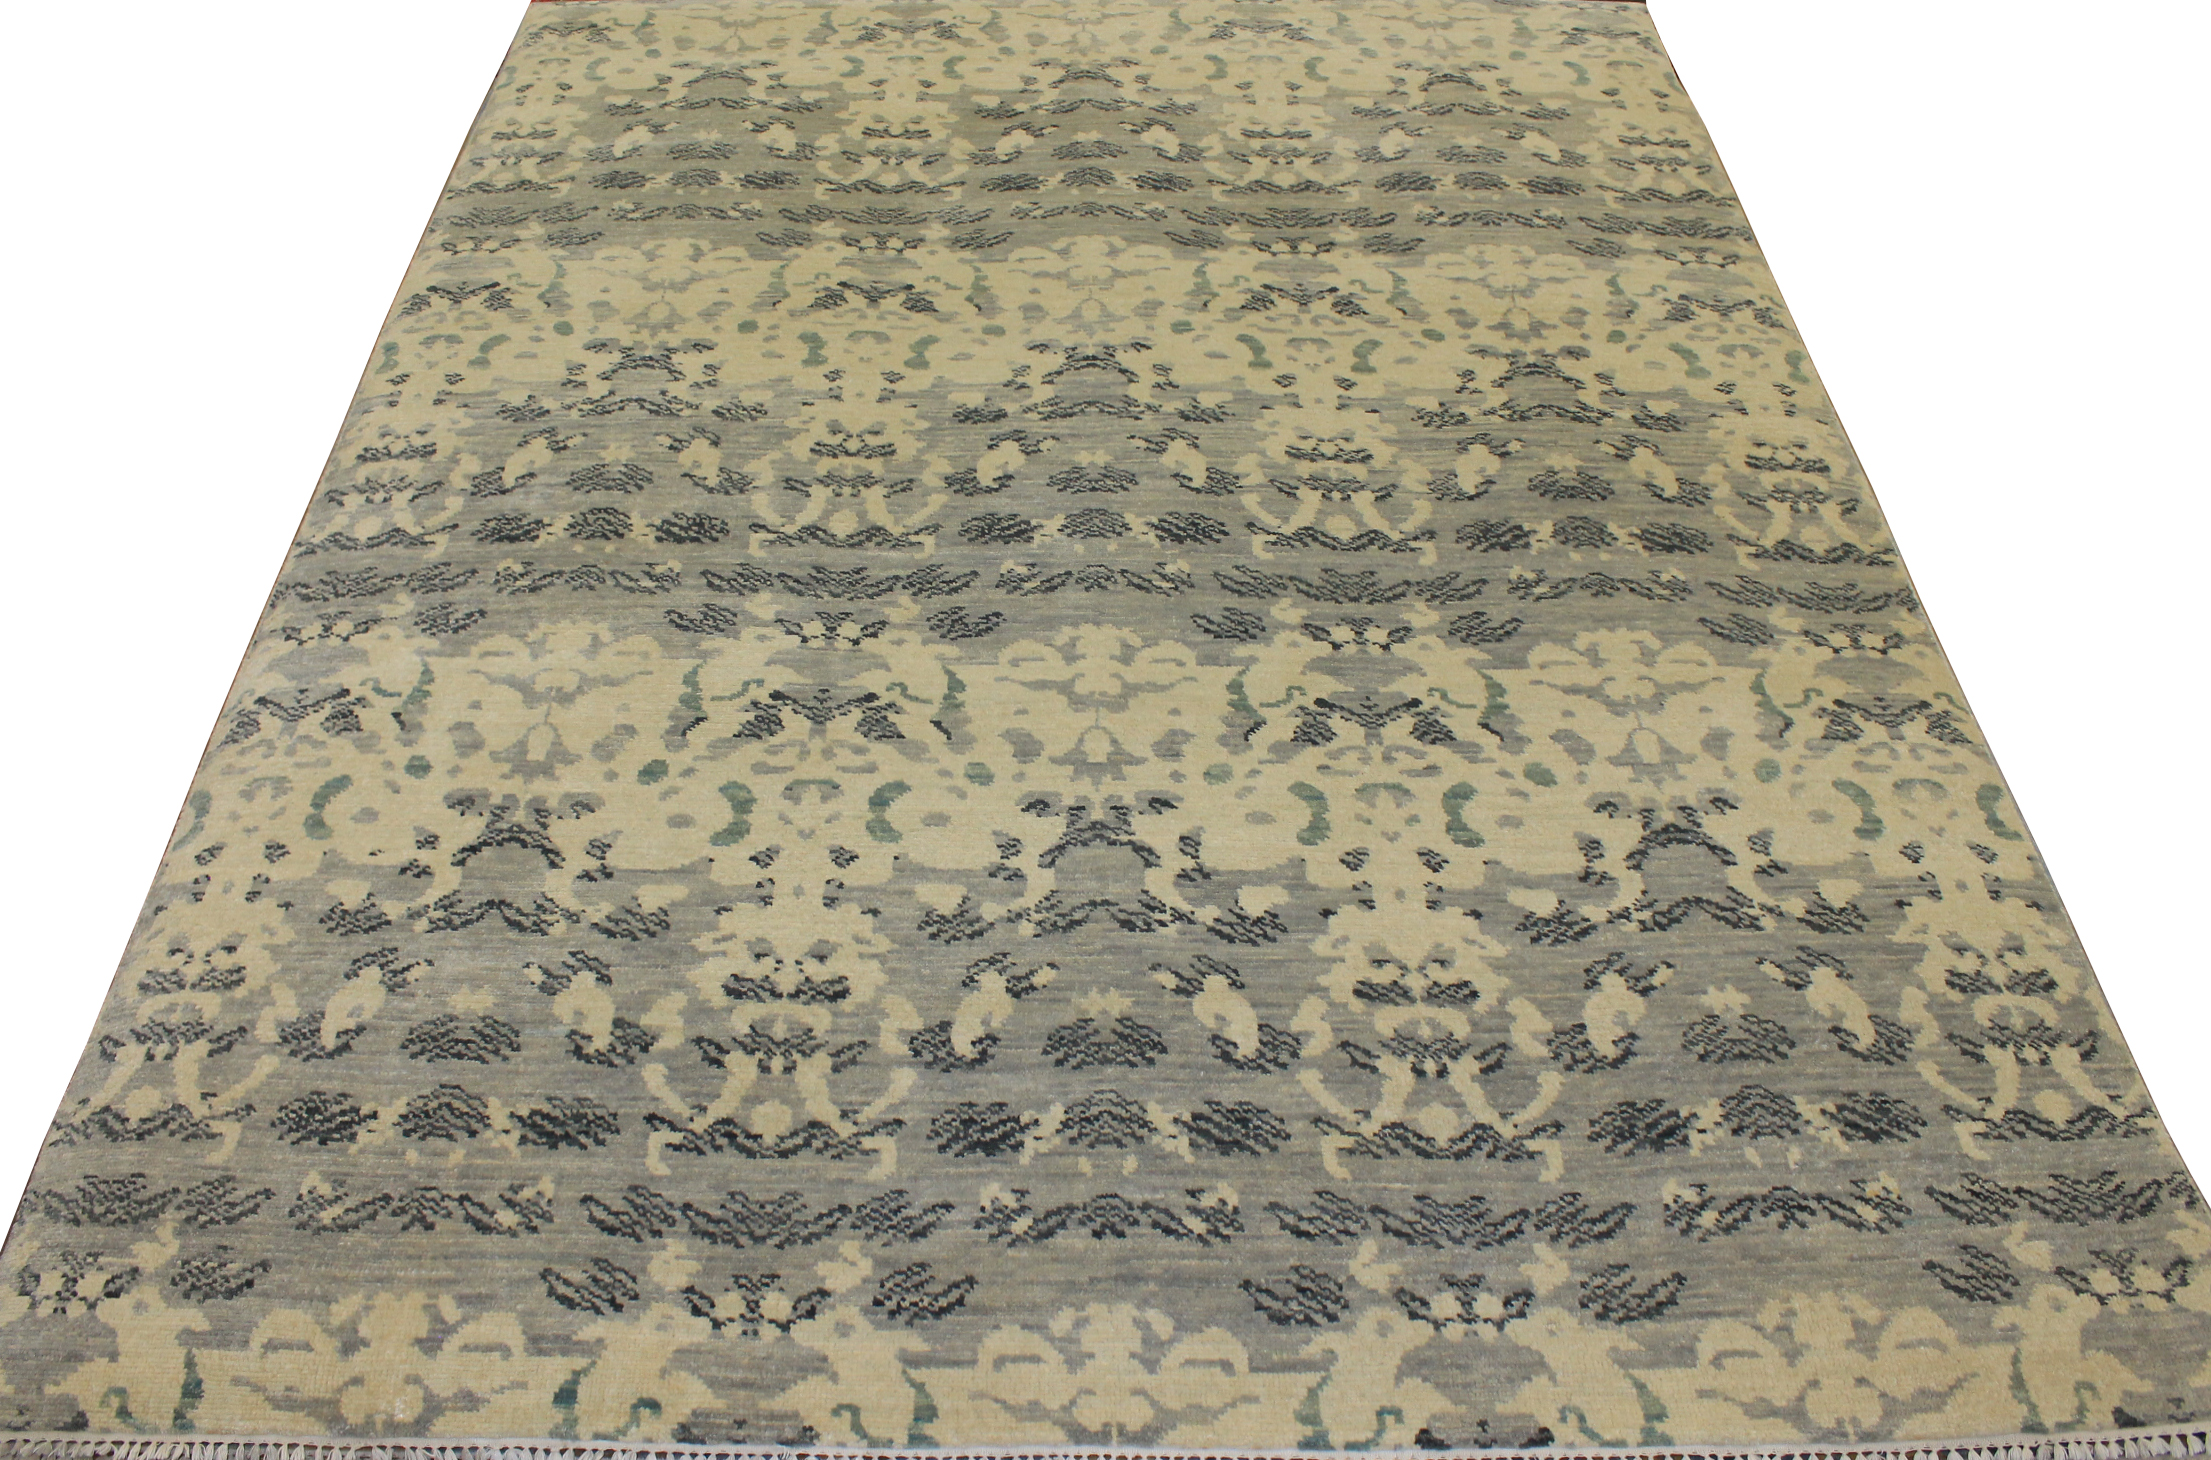 9x12 Contemporary Hand Knotted Wool Area Rug - MR18515